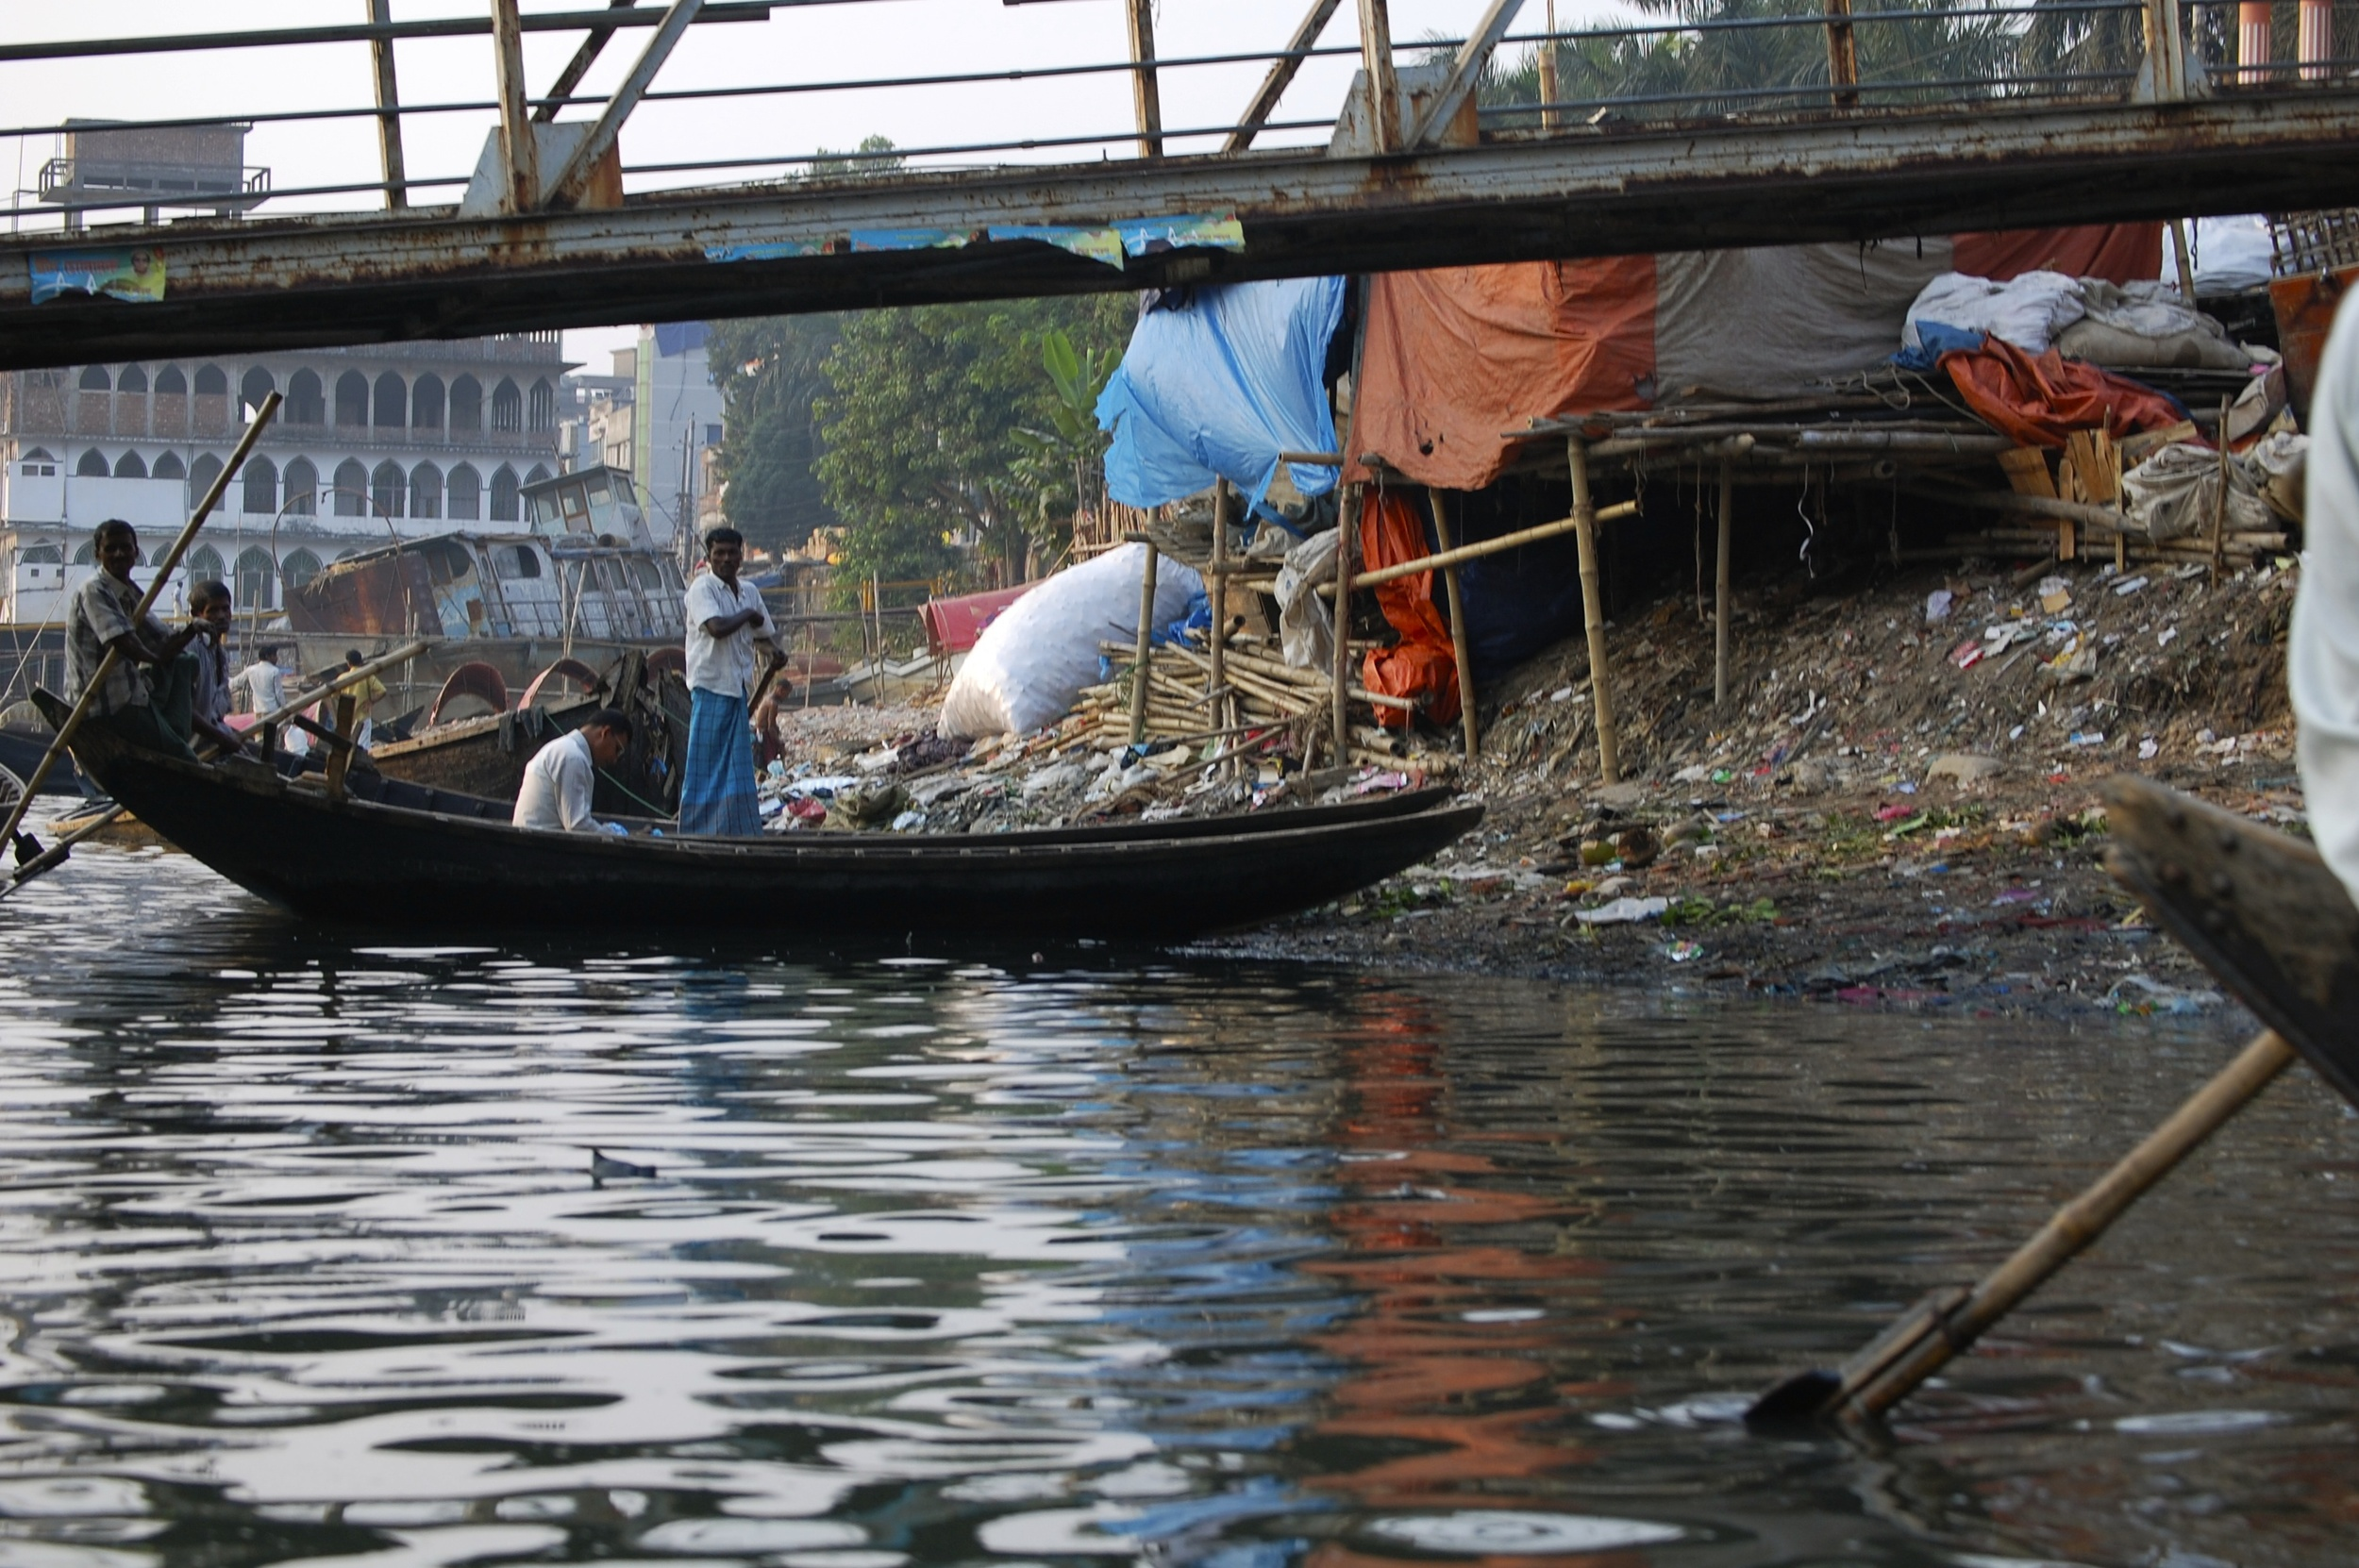 Life on the Buriganga River